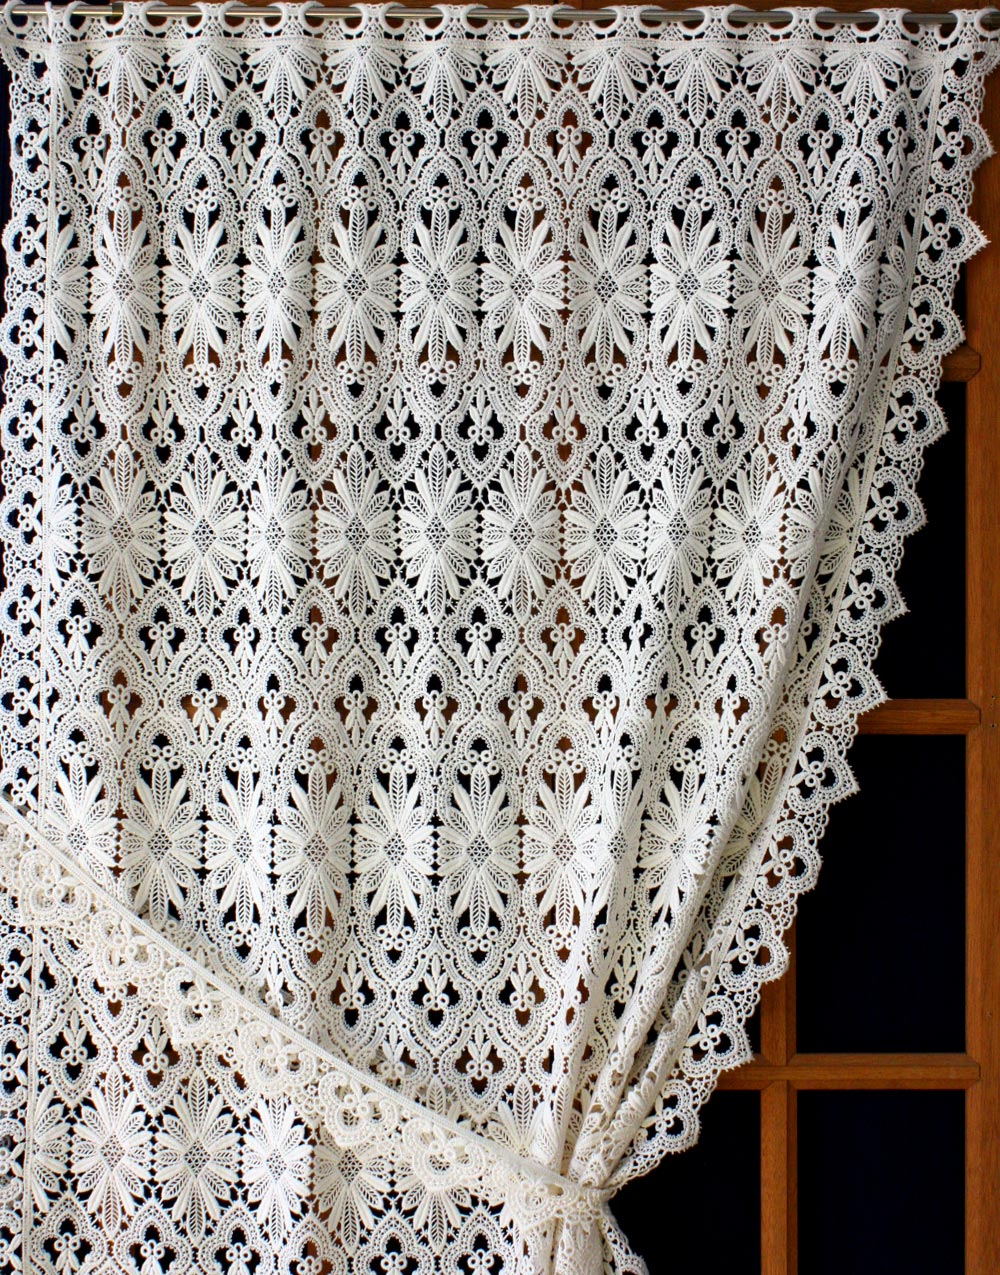 French Lace Curtains Macrame Lace Curtains Avaible In Cutom Size Direct From French